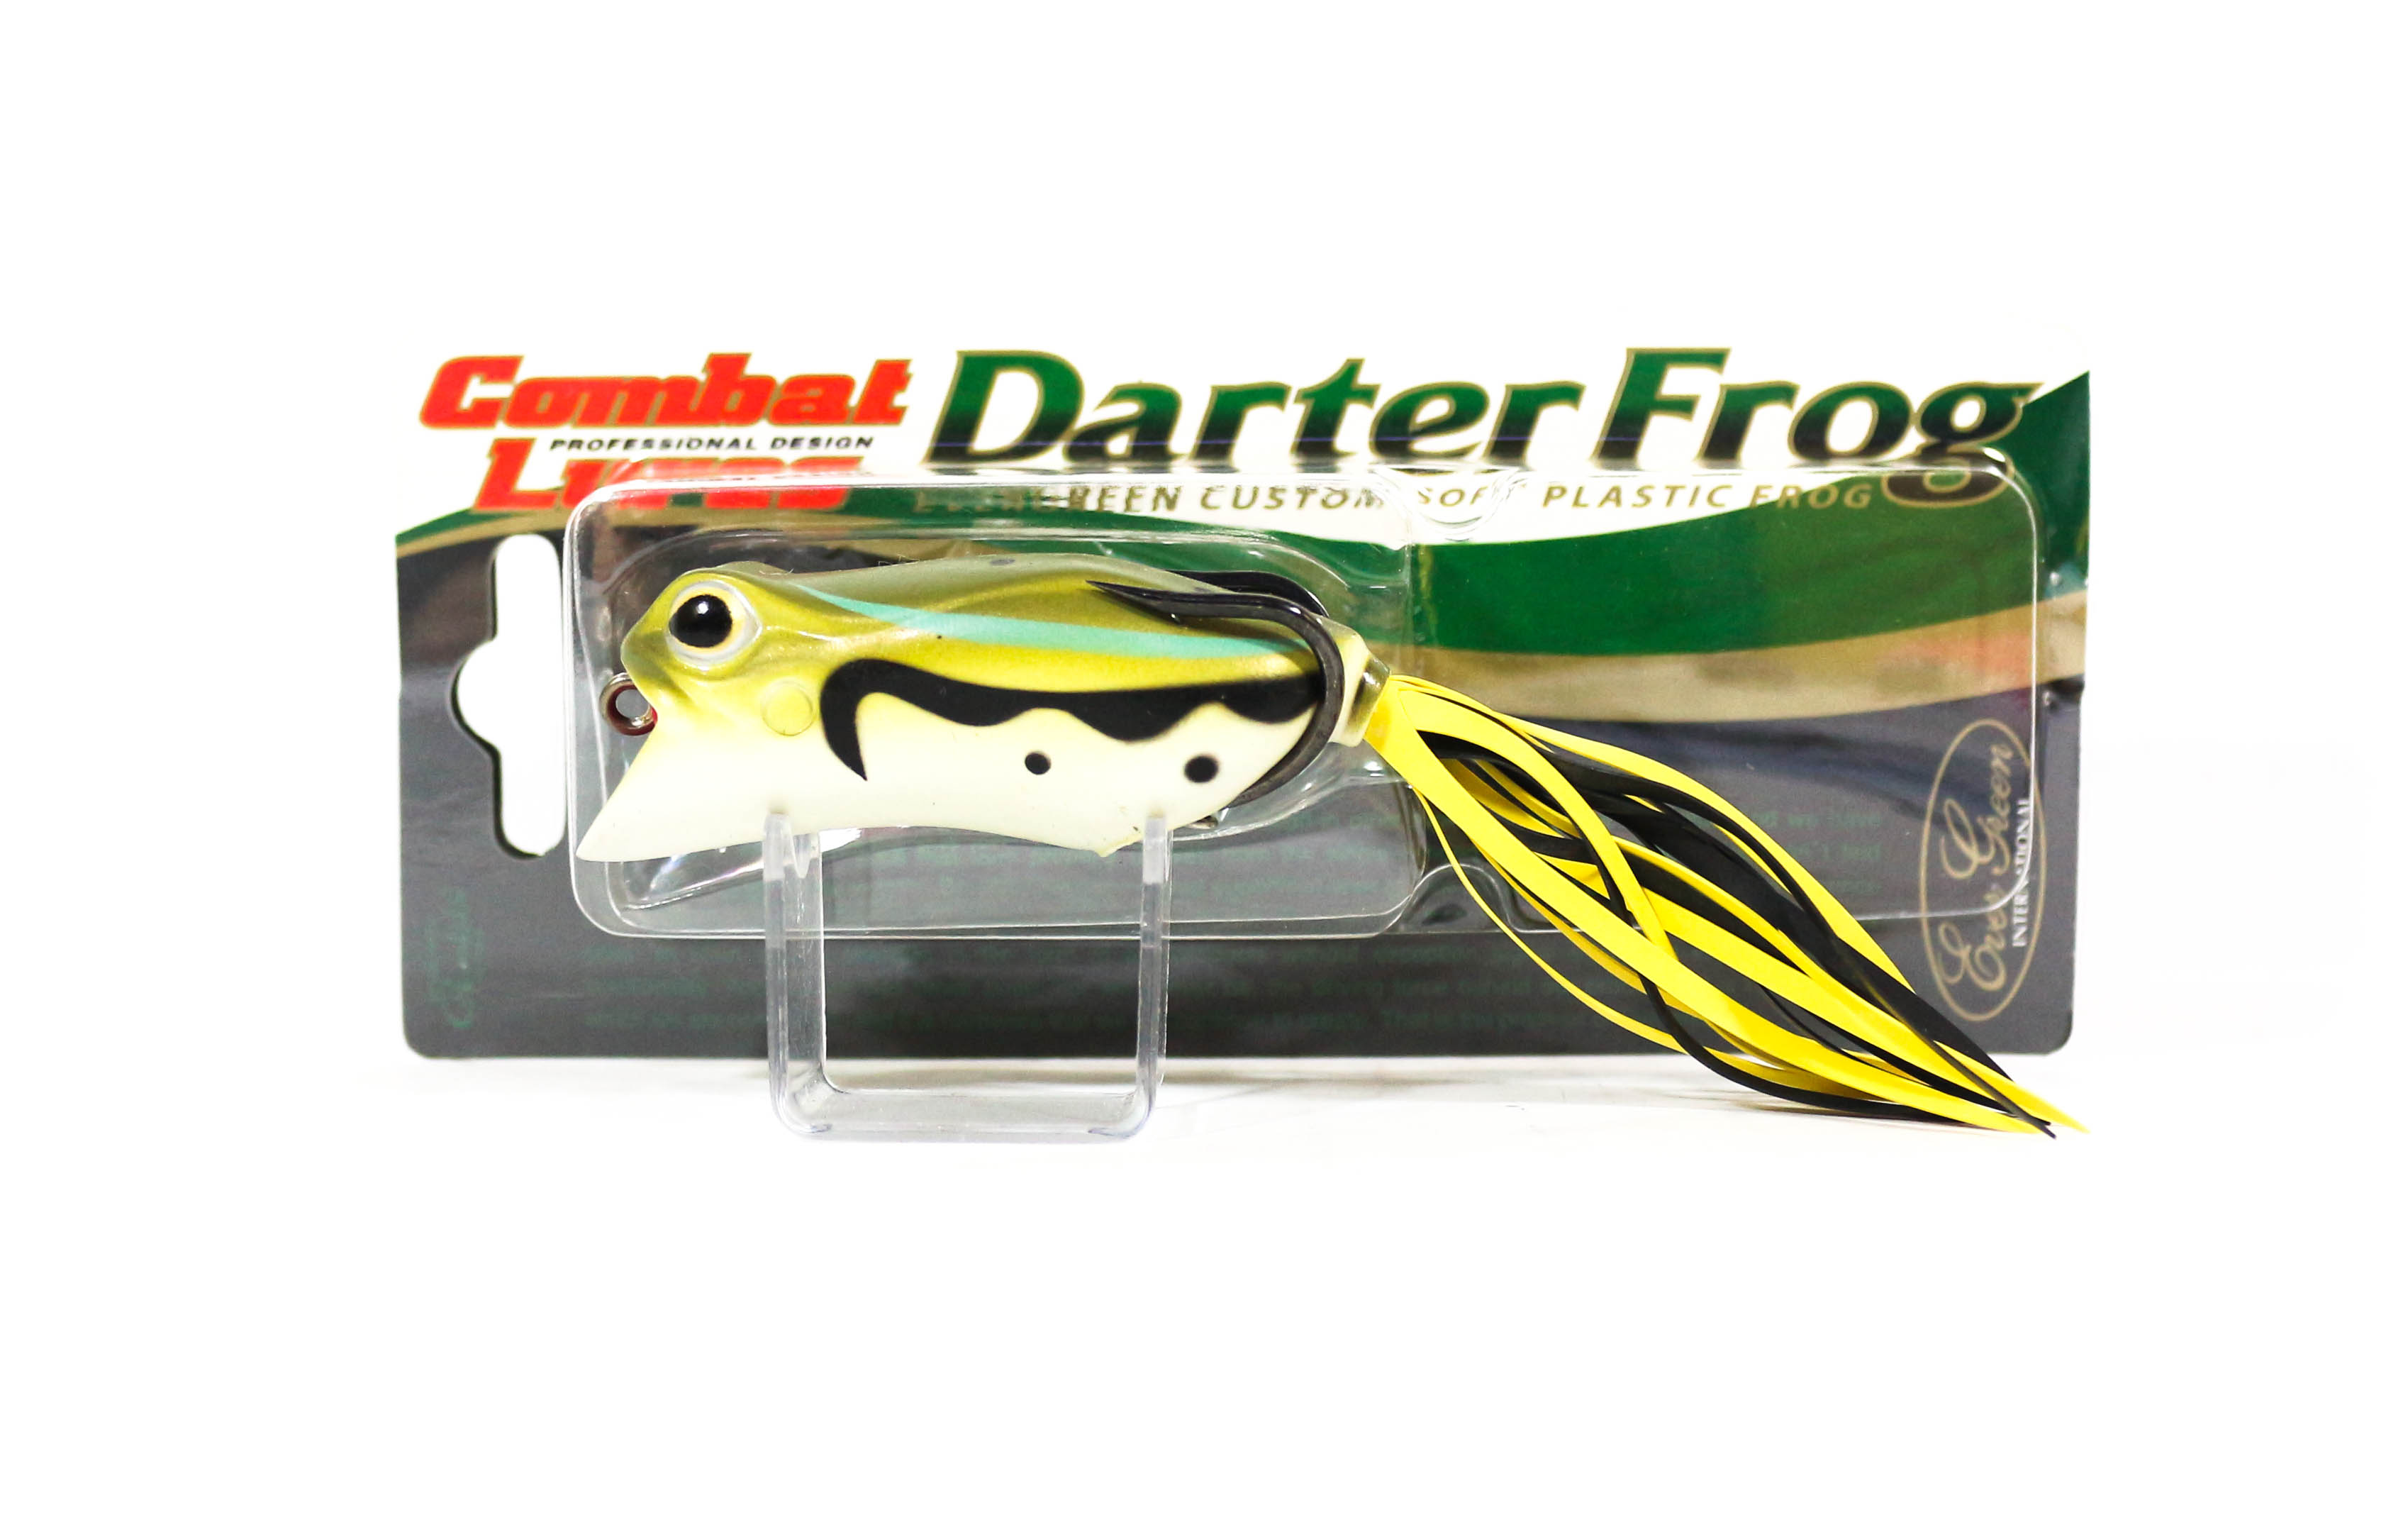 Sale Evergreen Darter Frog Soft Plastic Floating Lure 202 (9811)